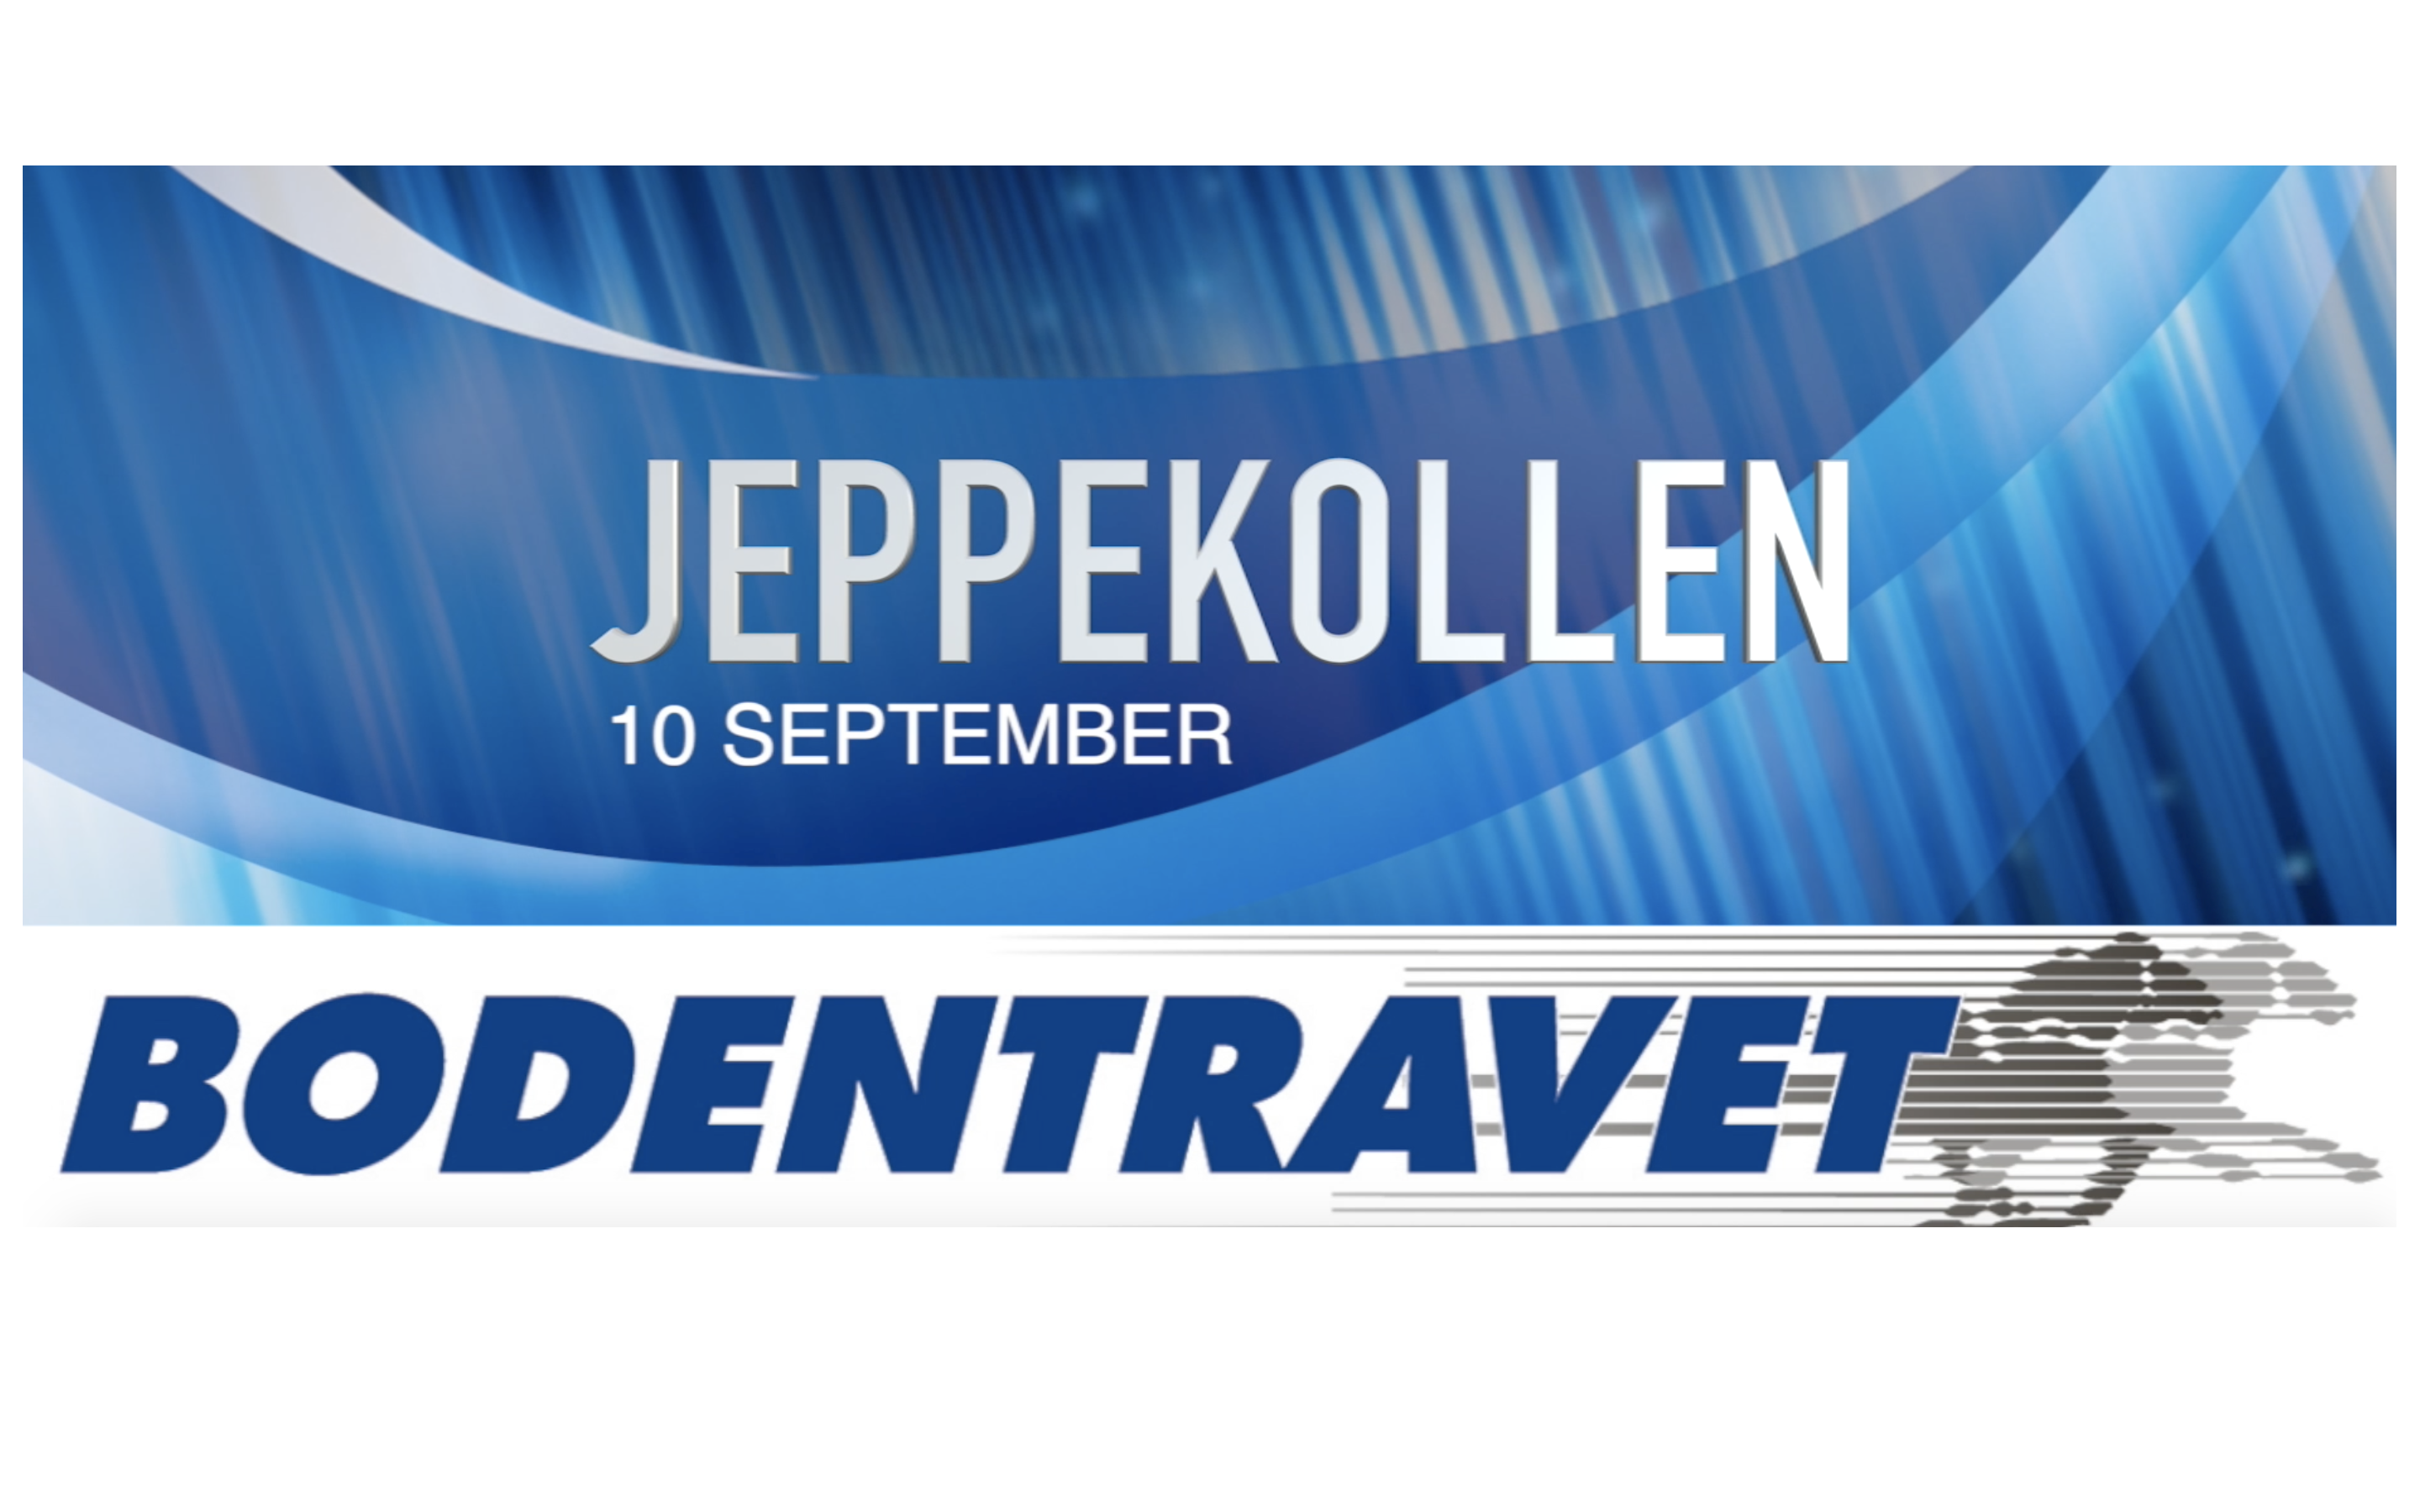 Jeppekollen 10 september